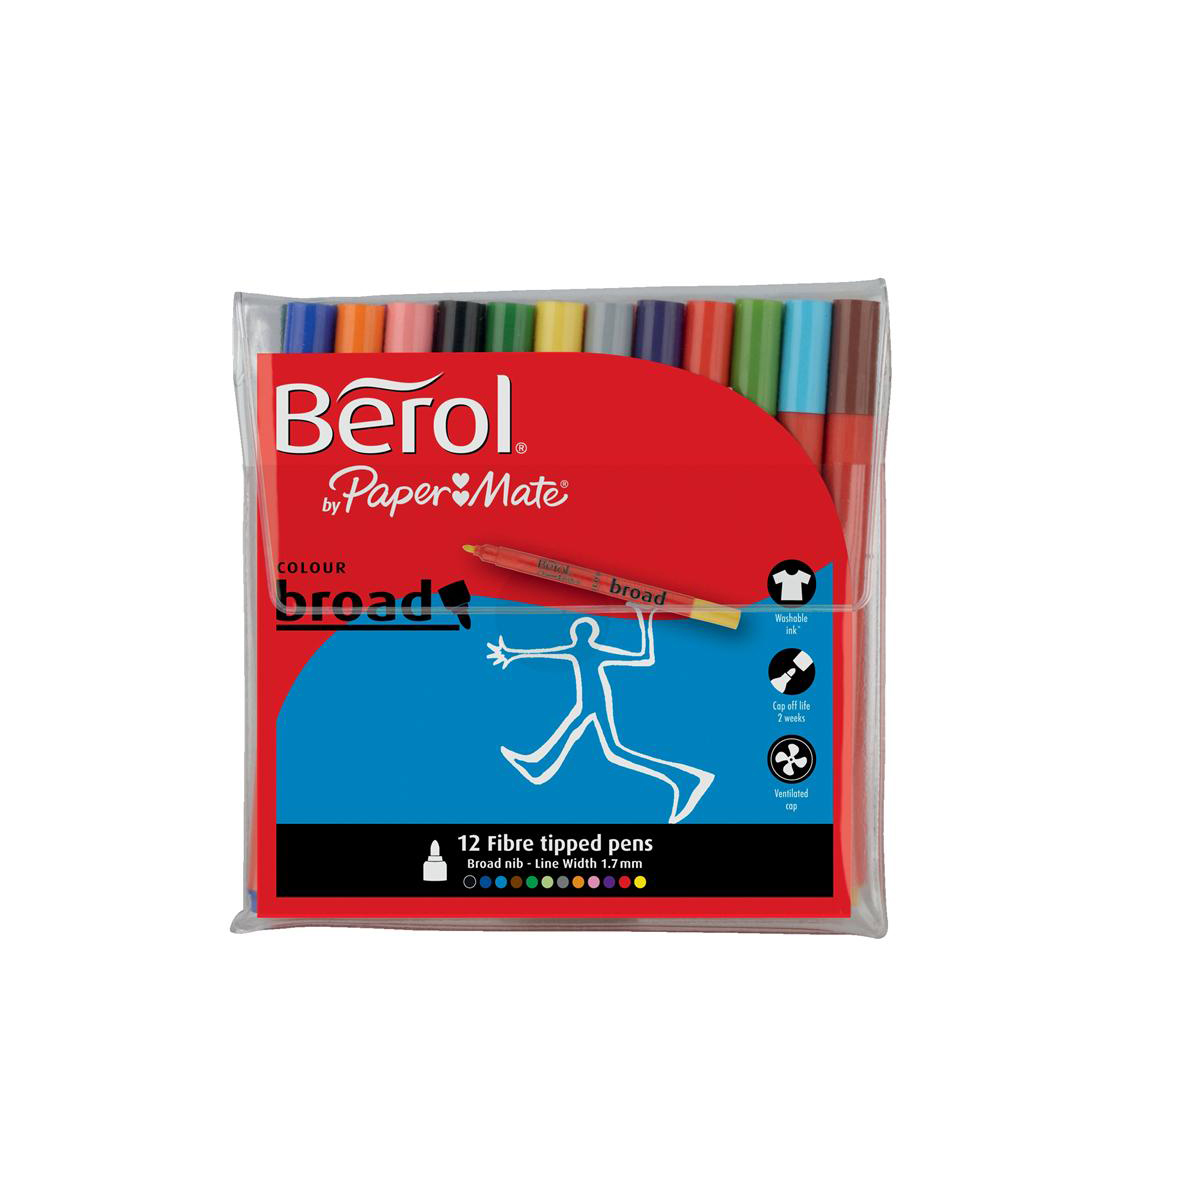 Colouring Pens Berol Colour Broad Pens with Washable Ink 1.7mm Line Wallet Assorted Ref 2057596 Pack 12